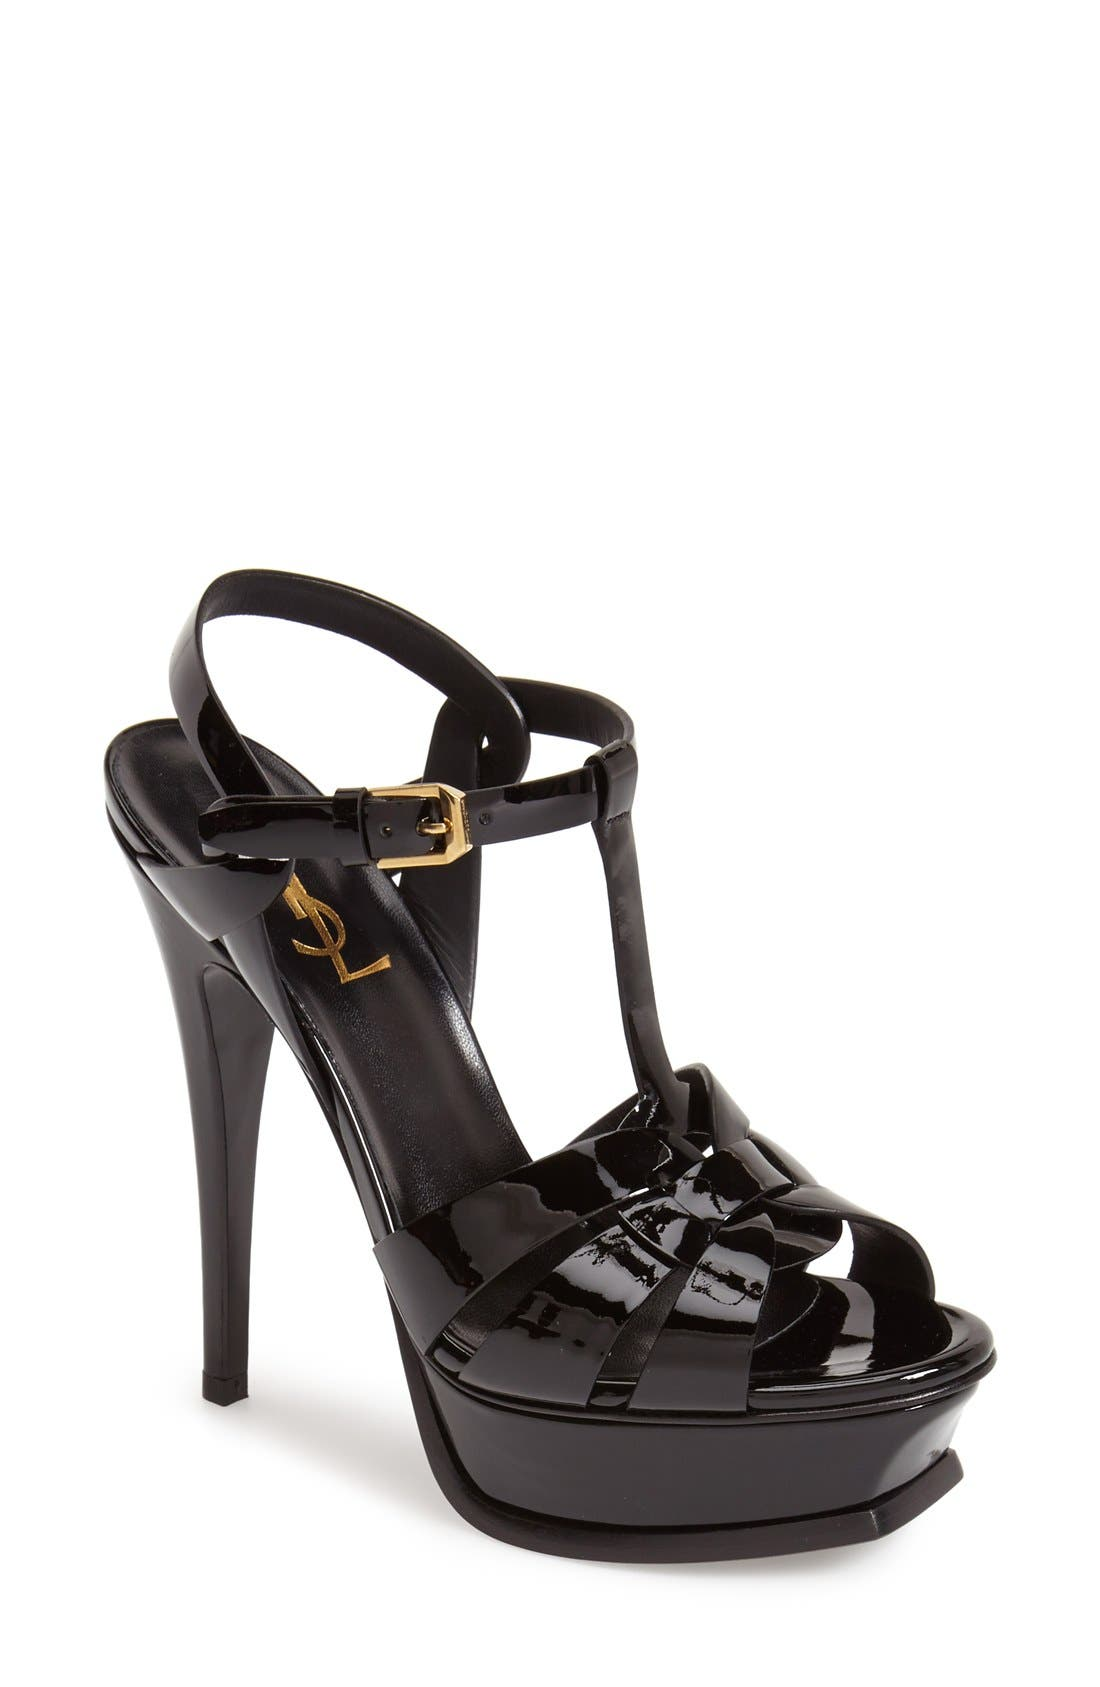 SAINT LAURENT, Tribute T-Strap Platform Sandal, Main thumbnail 1, color, BLACK PATENT